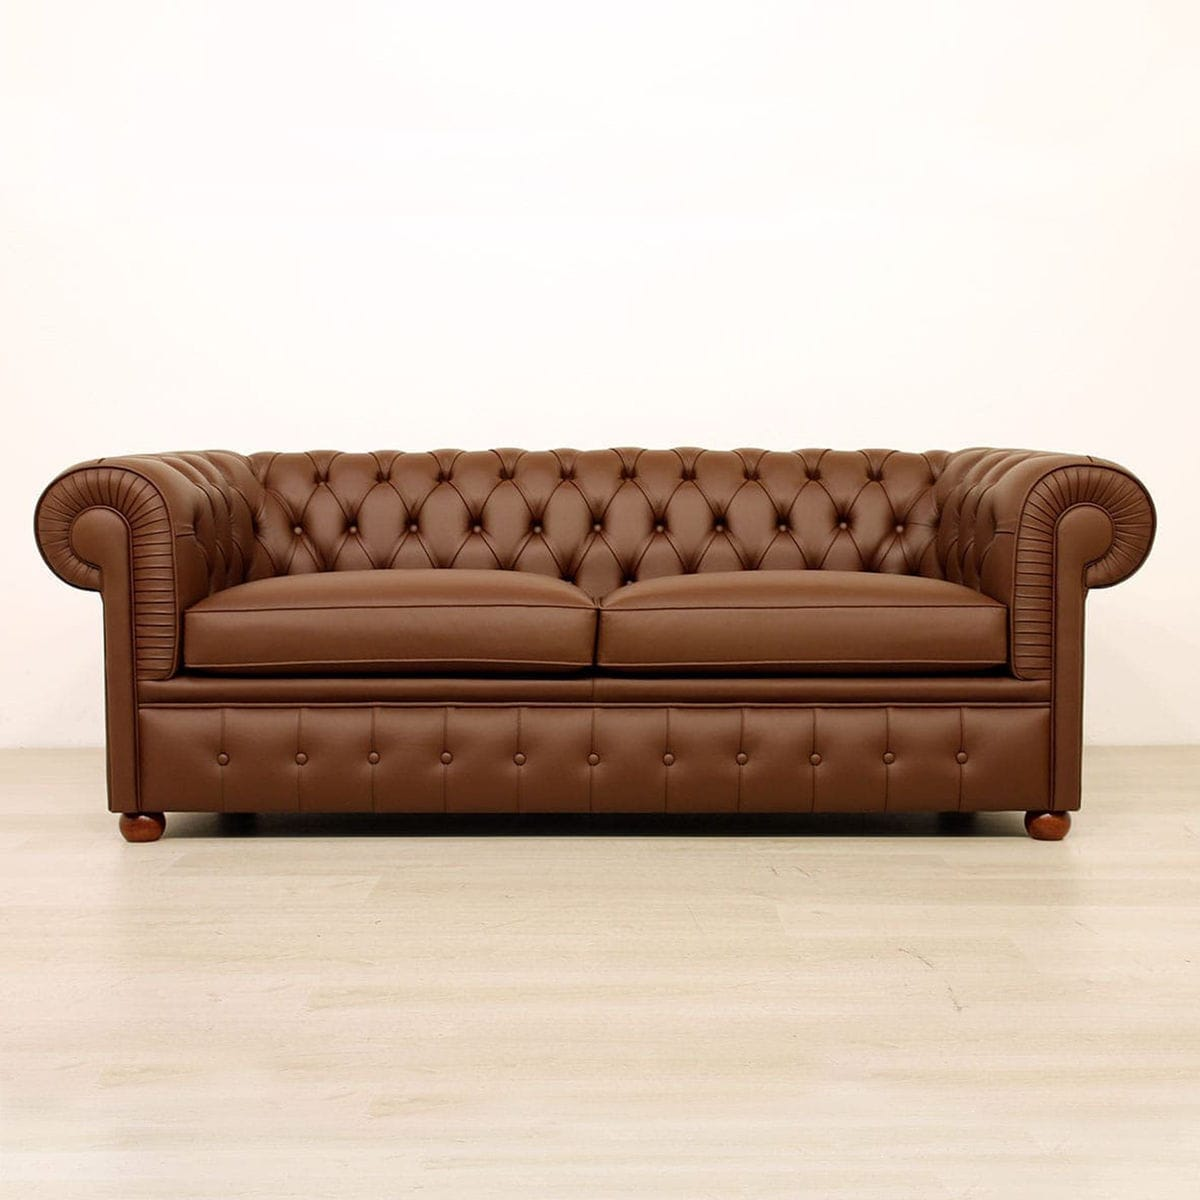 Chesterfield Sofa Fabric Leather